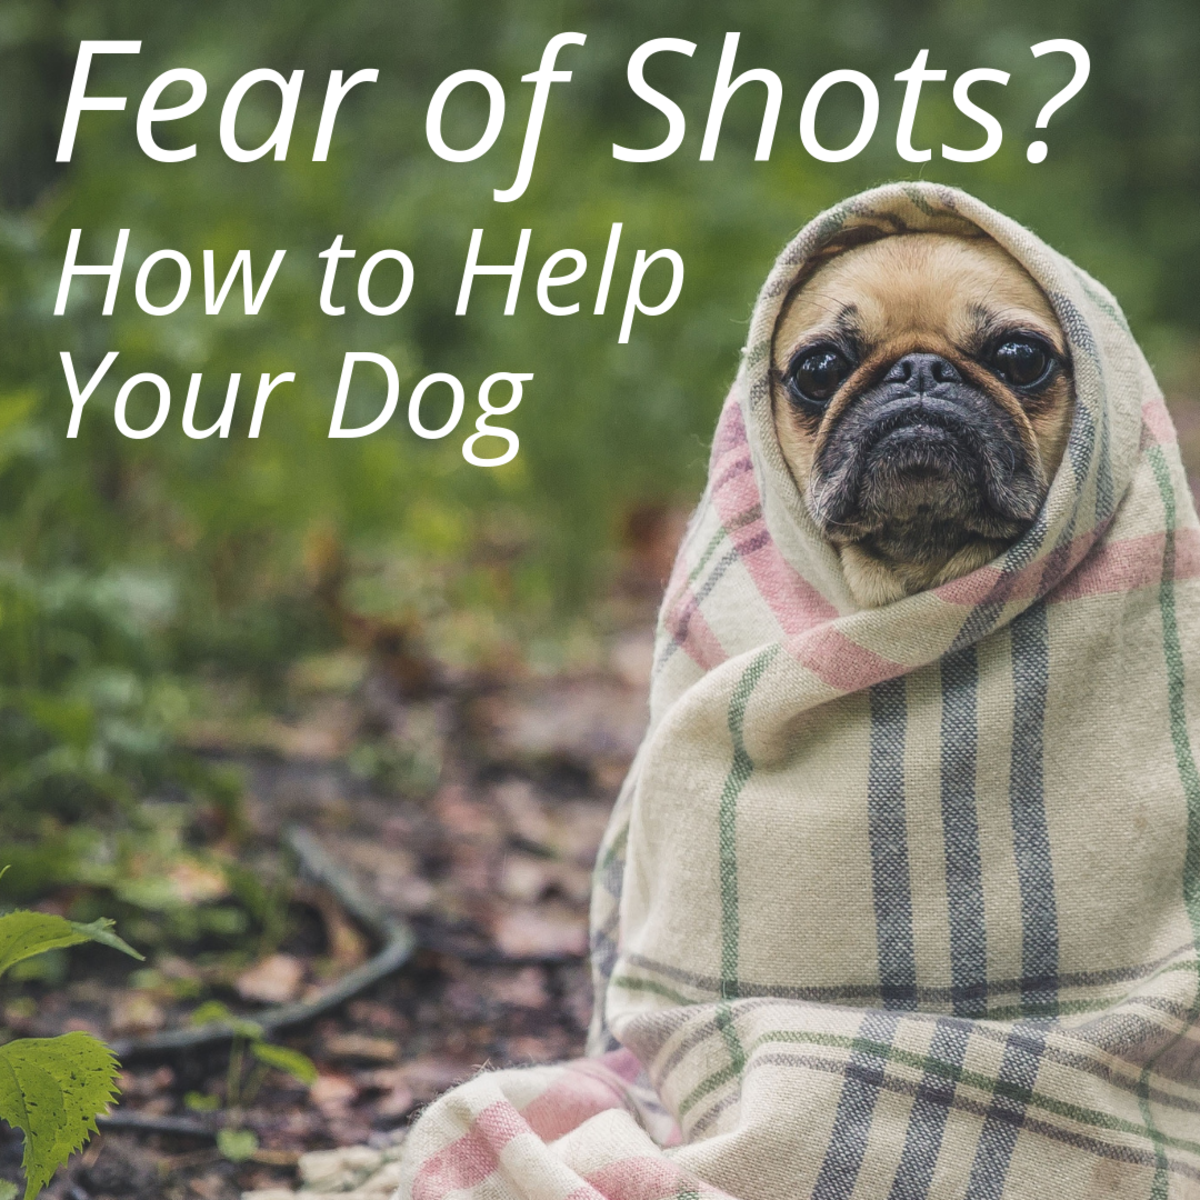 Dogs and Fear of Shots